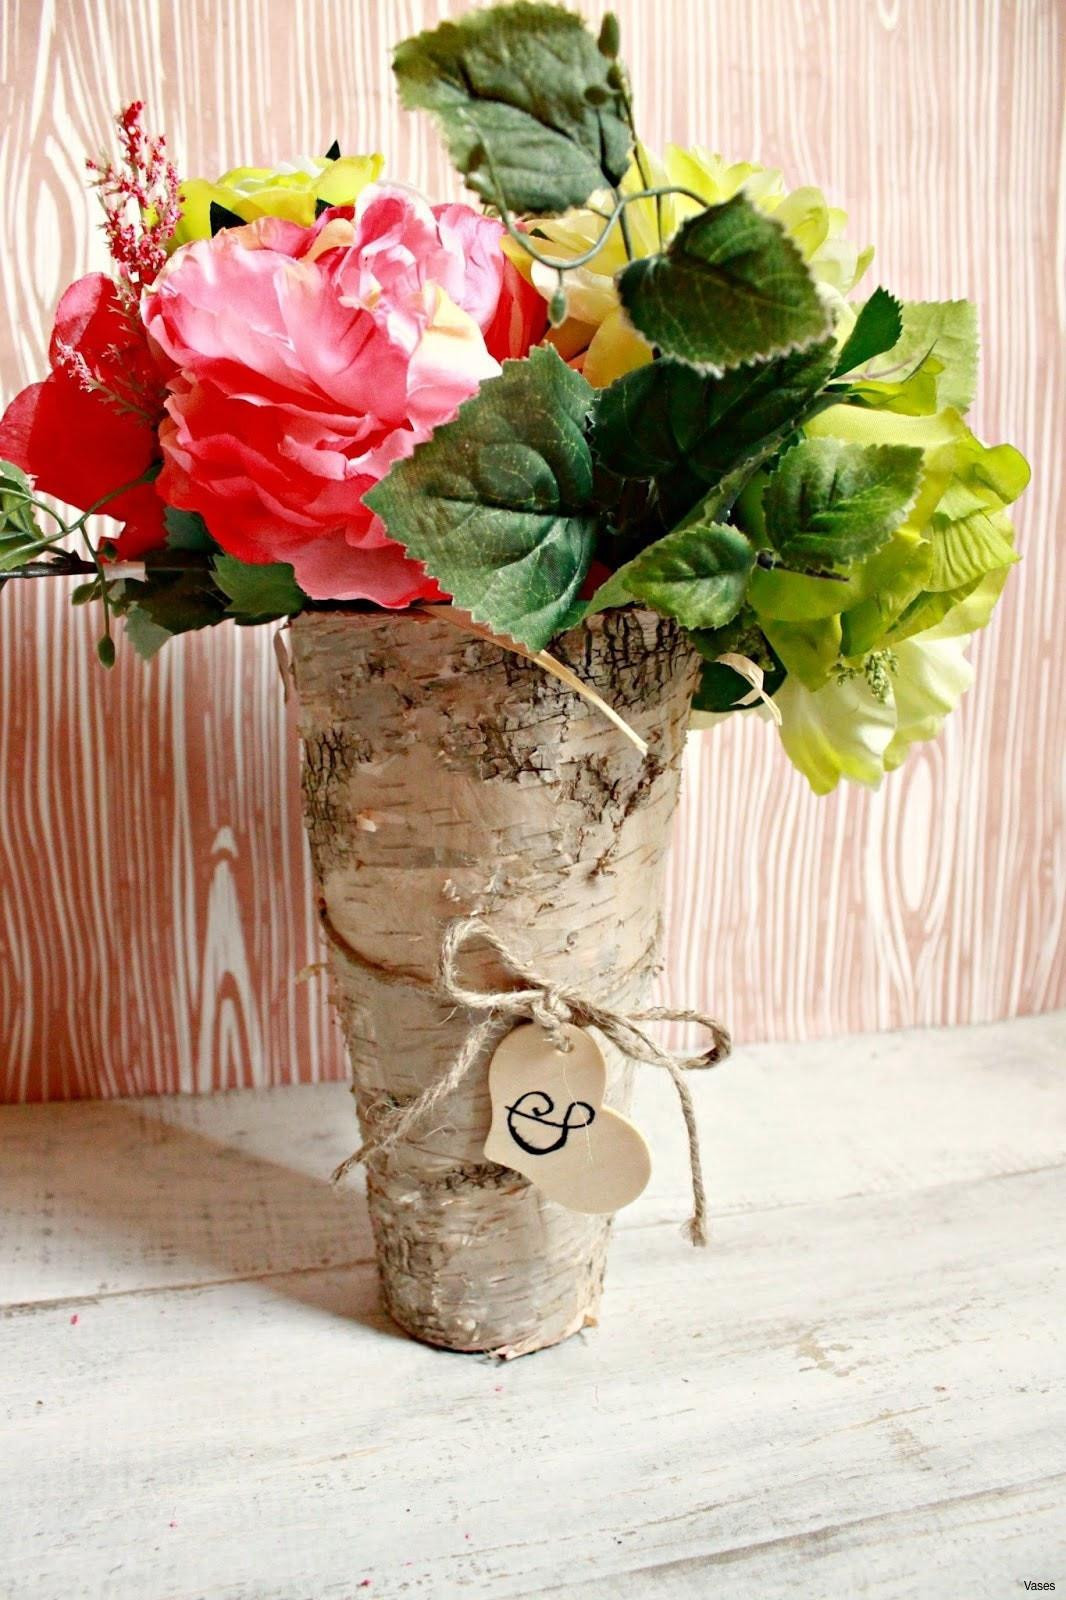 cheap wedding vases in bulk of cheap wedding decorations diy new wedding flowers h vases diy wood pertaining to cheap wedding decorations diy new wedding flowers h vases diy wood vase i 0d base design